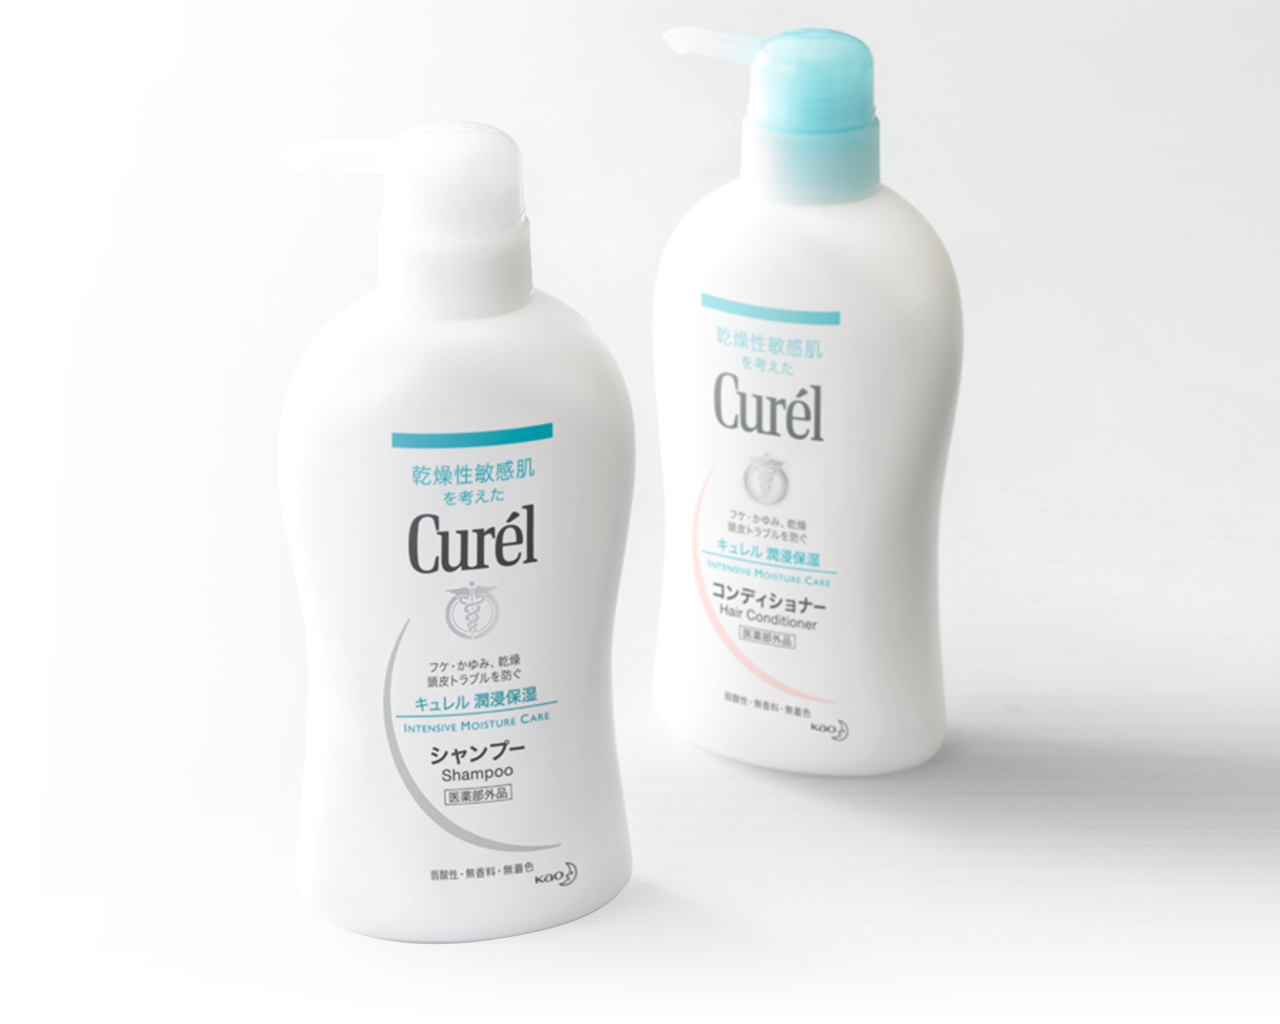 7605f609f0 Cleanses sebum and dirt while protecting the scalp s moisture. Prevents  dryness on scalp